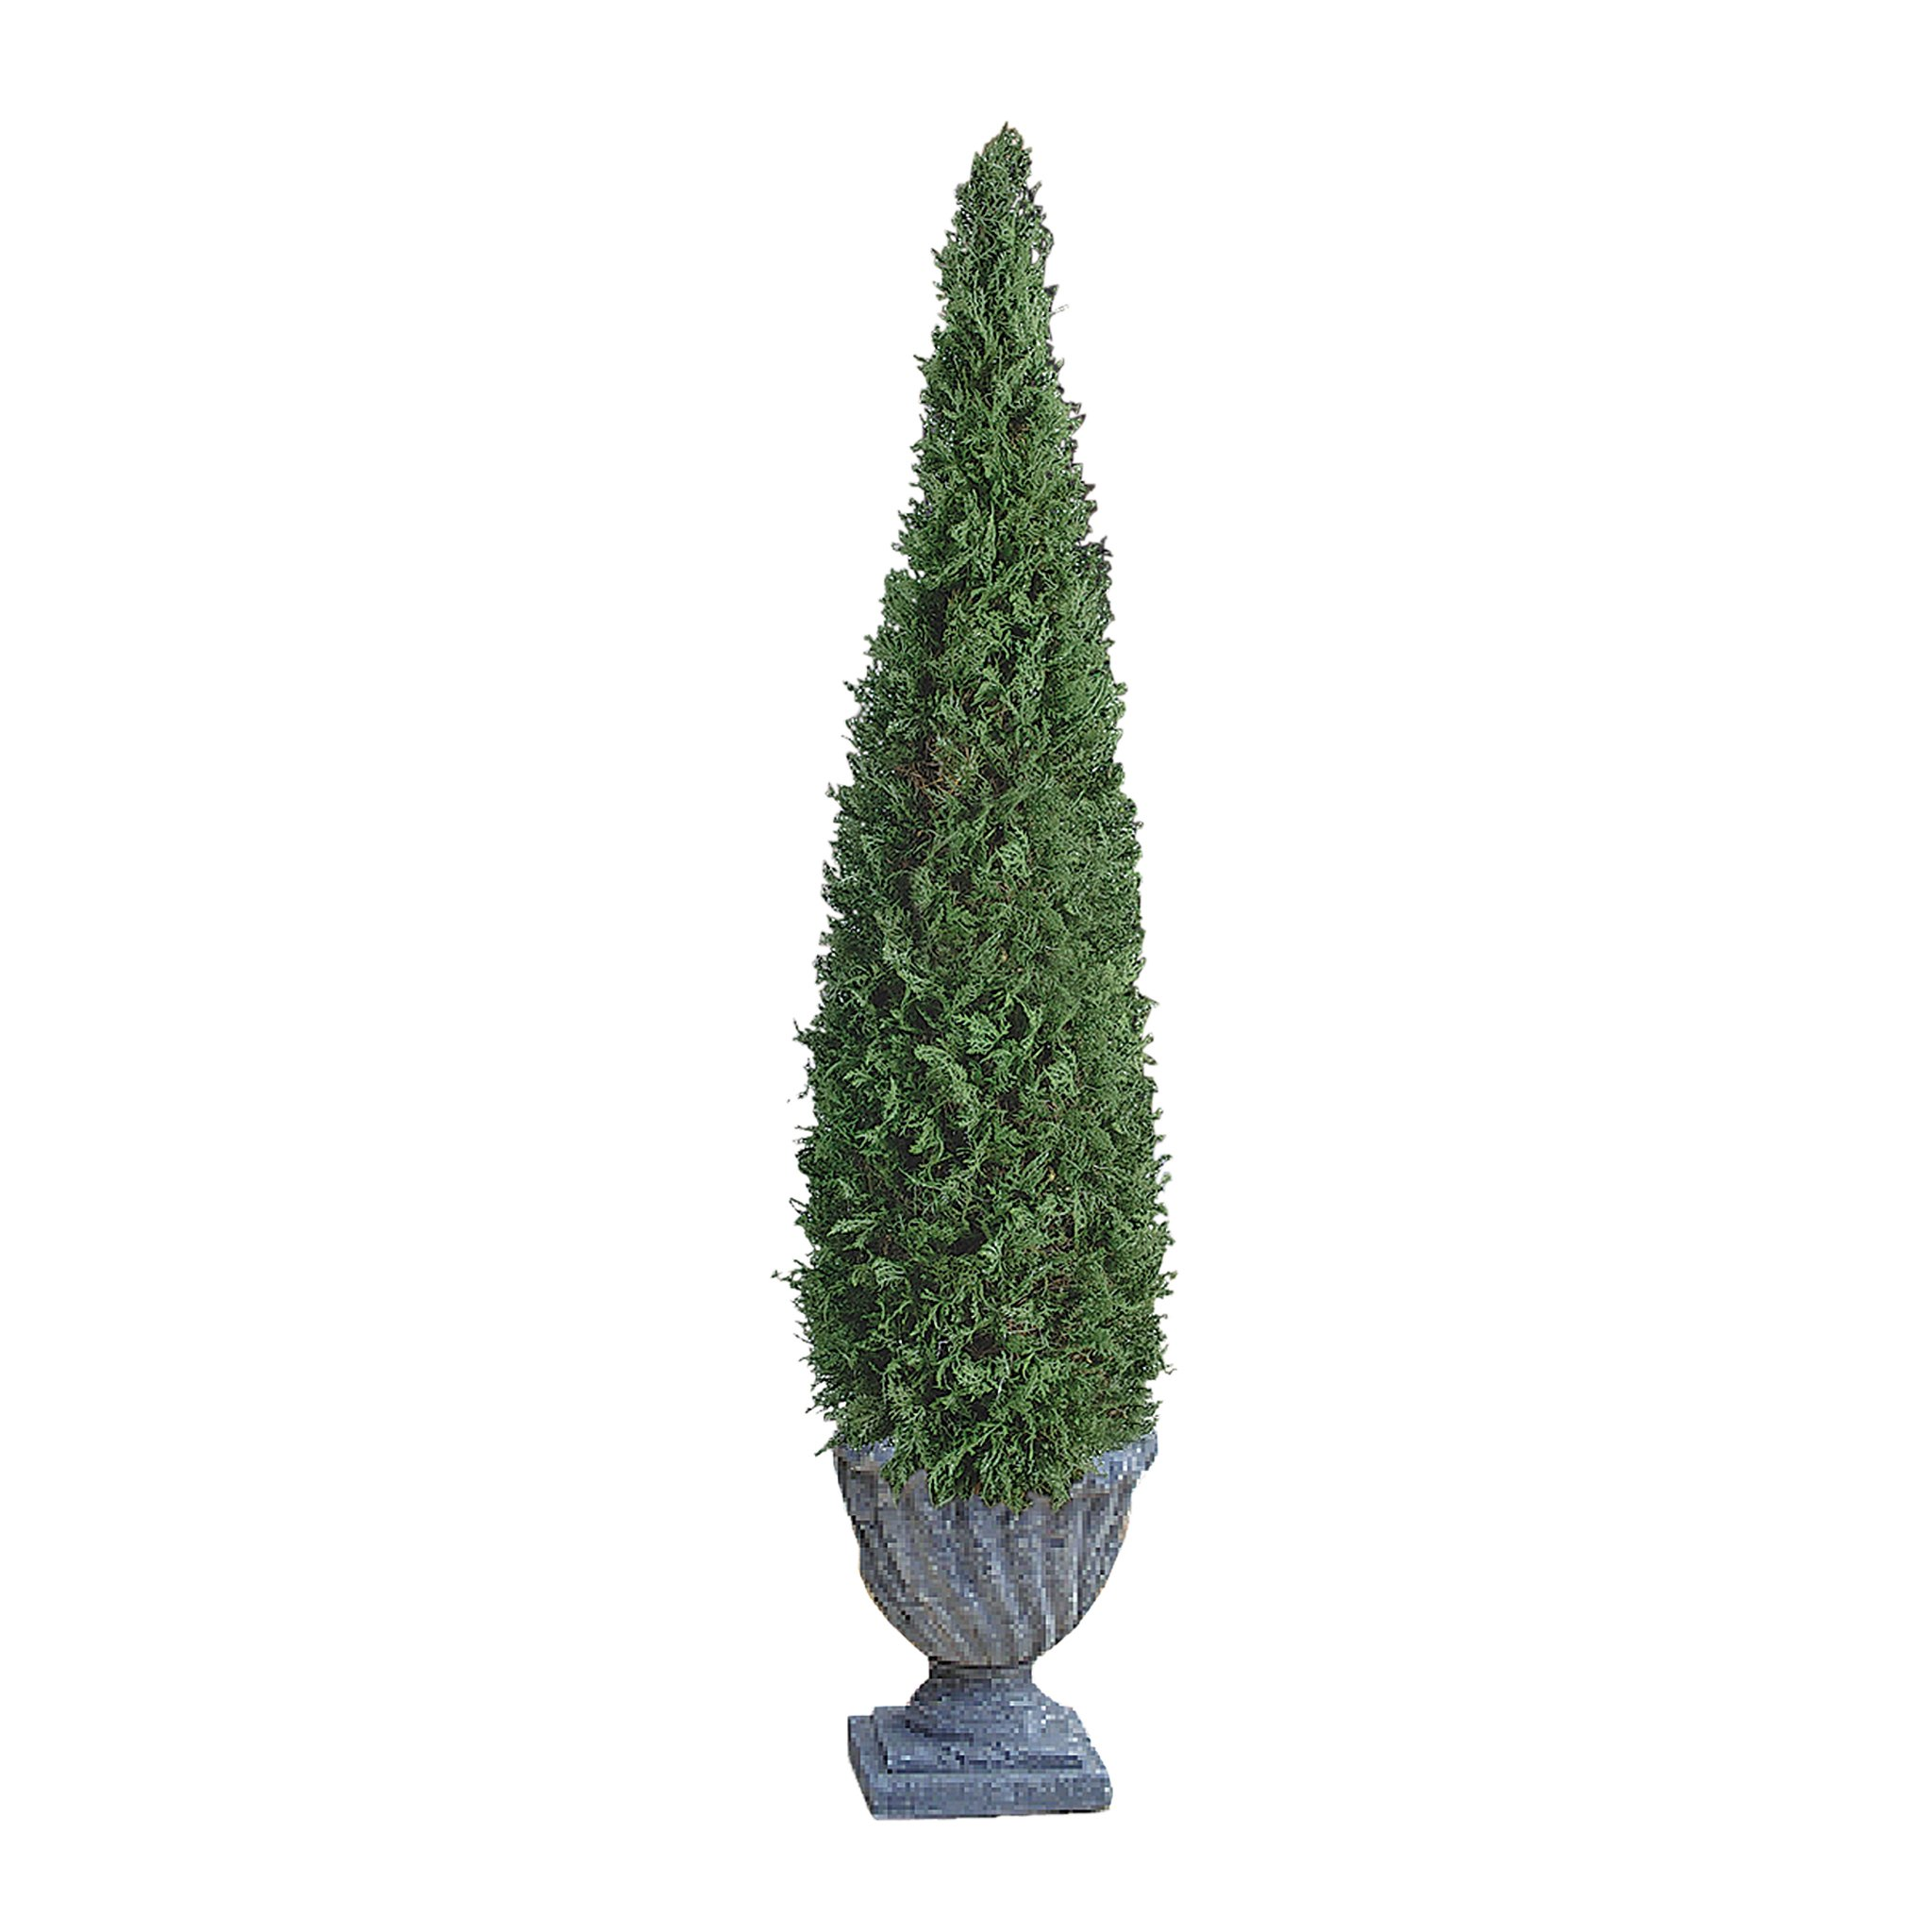 Design Toscano The Topiary Tree Collection Large Cone, Multicolored